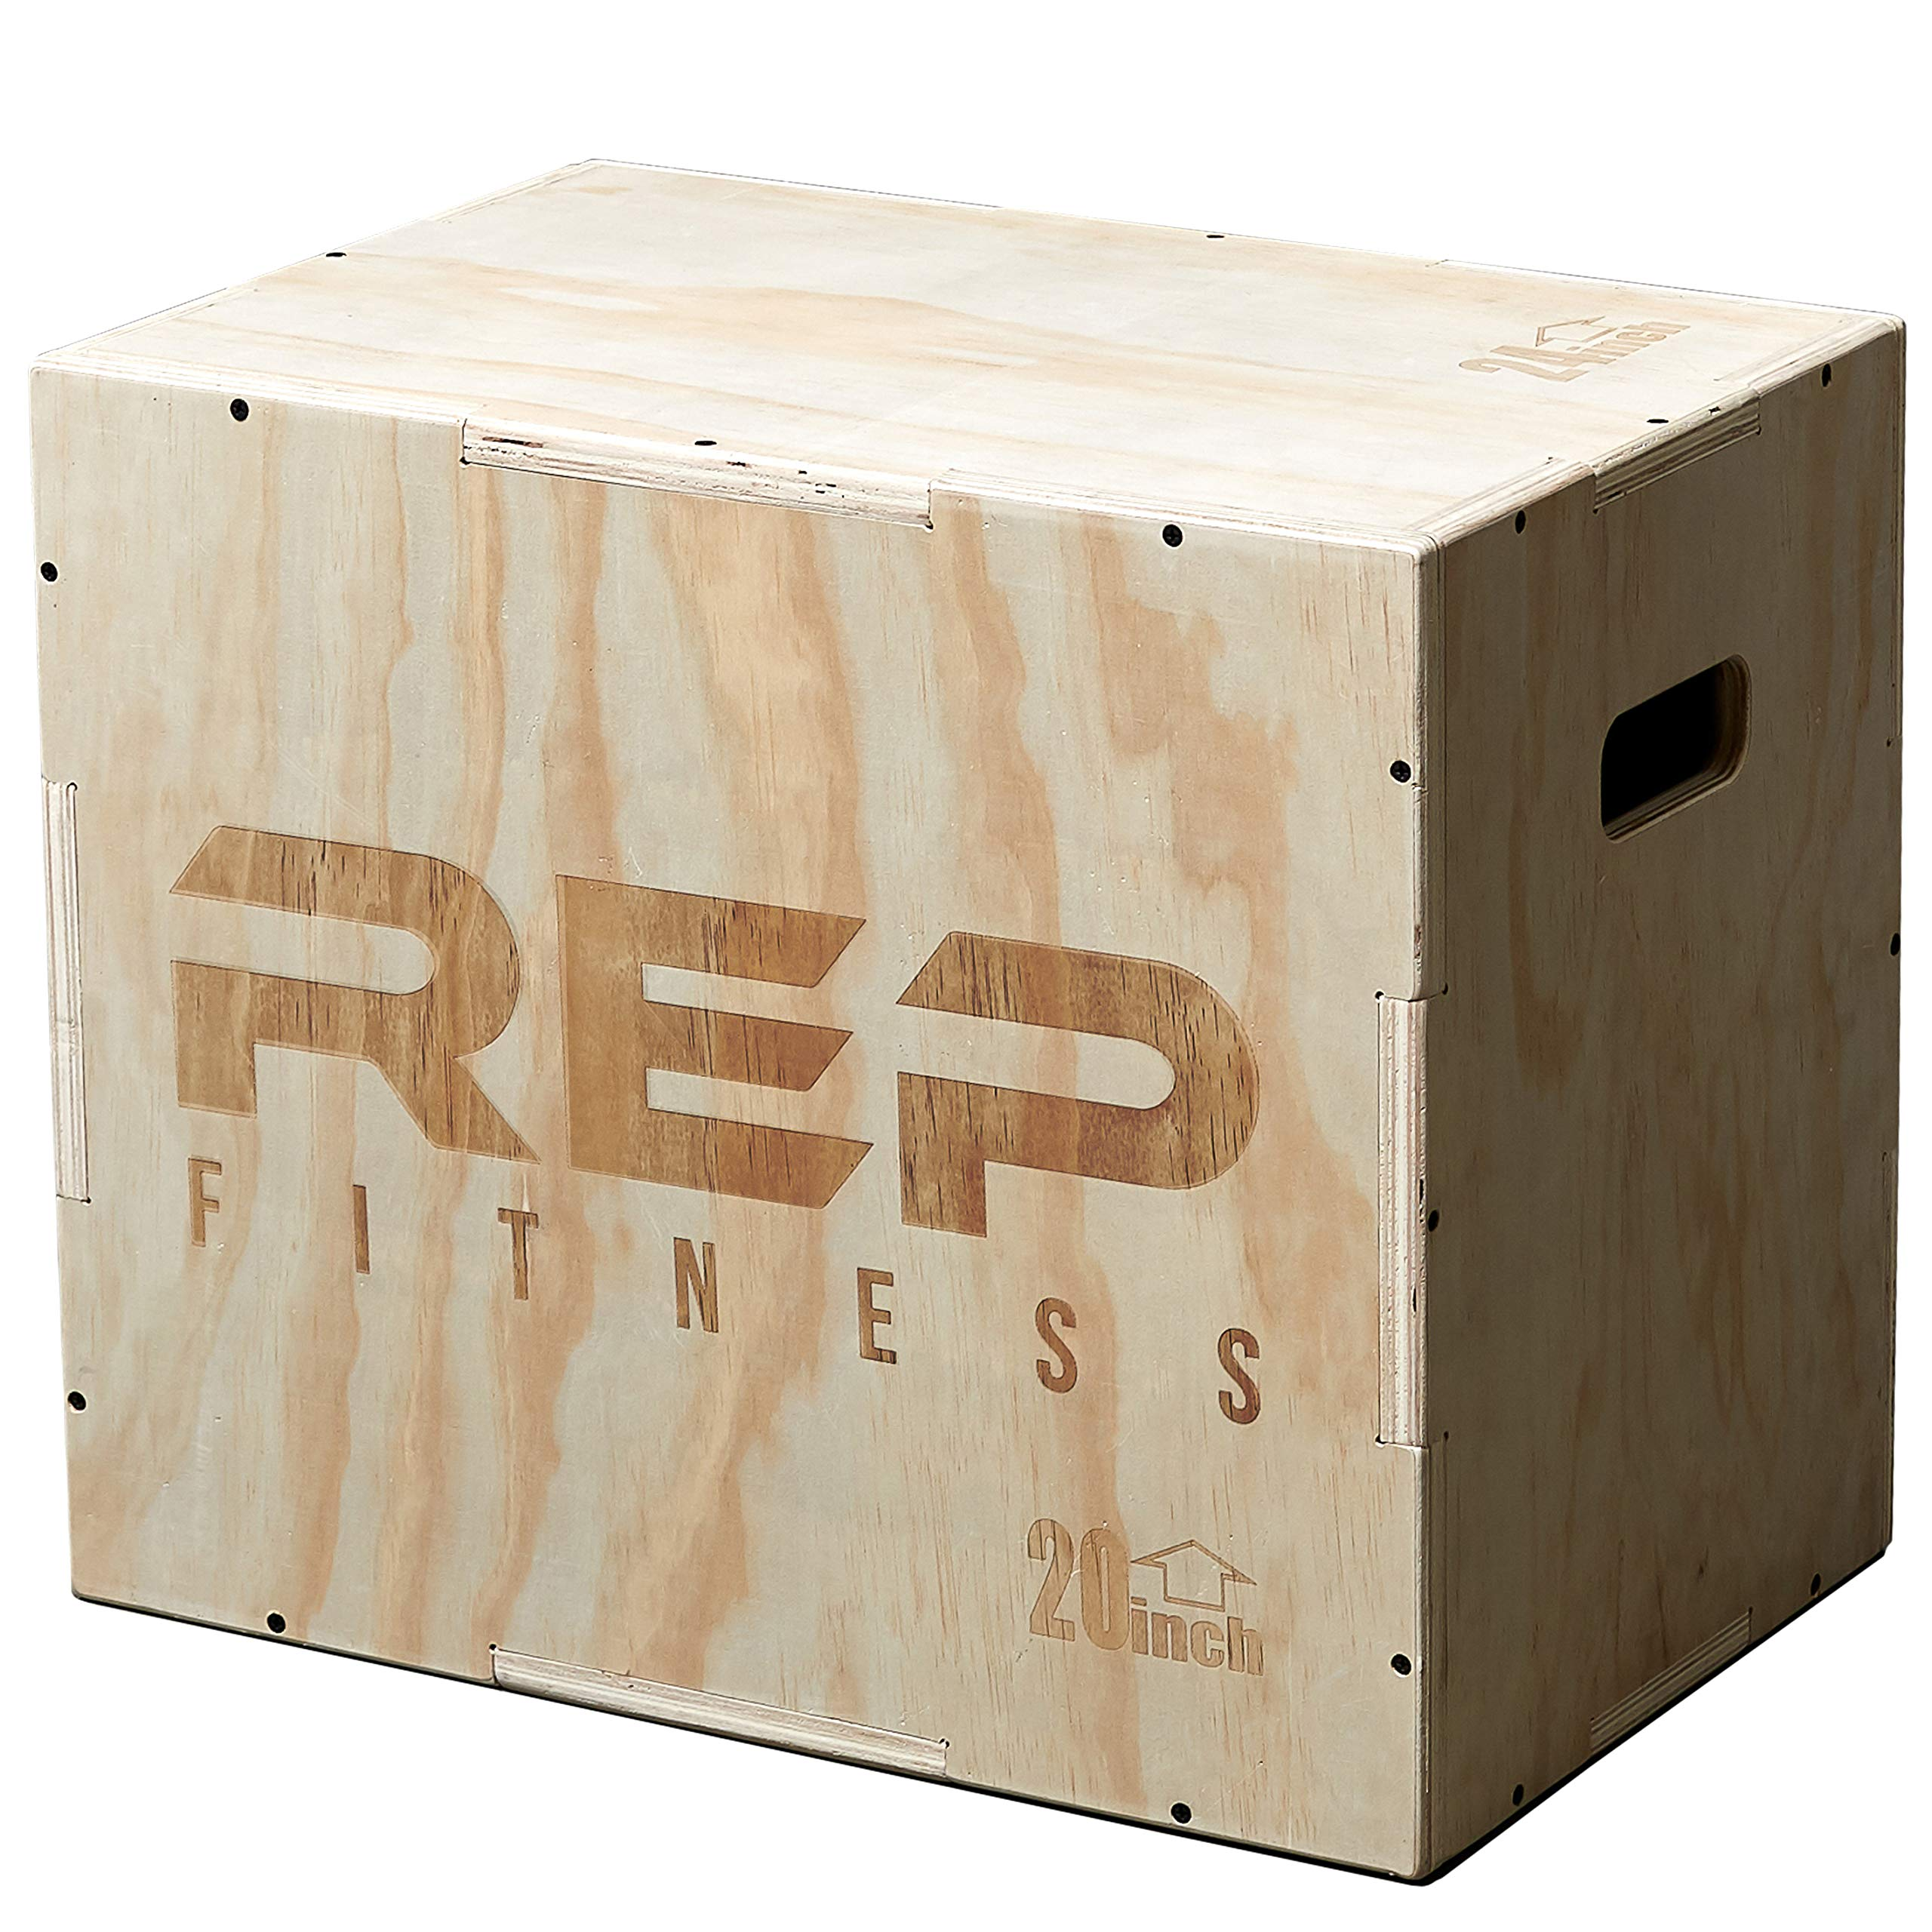 Rep 3 in 1 Wood Plyometric Box for Jump Training and Conditioning 24/20/16 by REP FITNESS